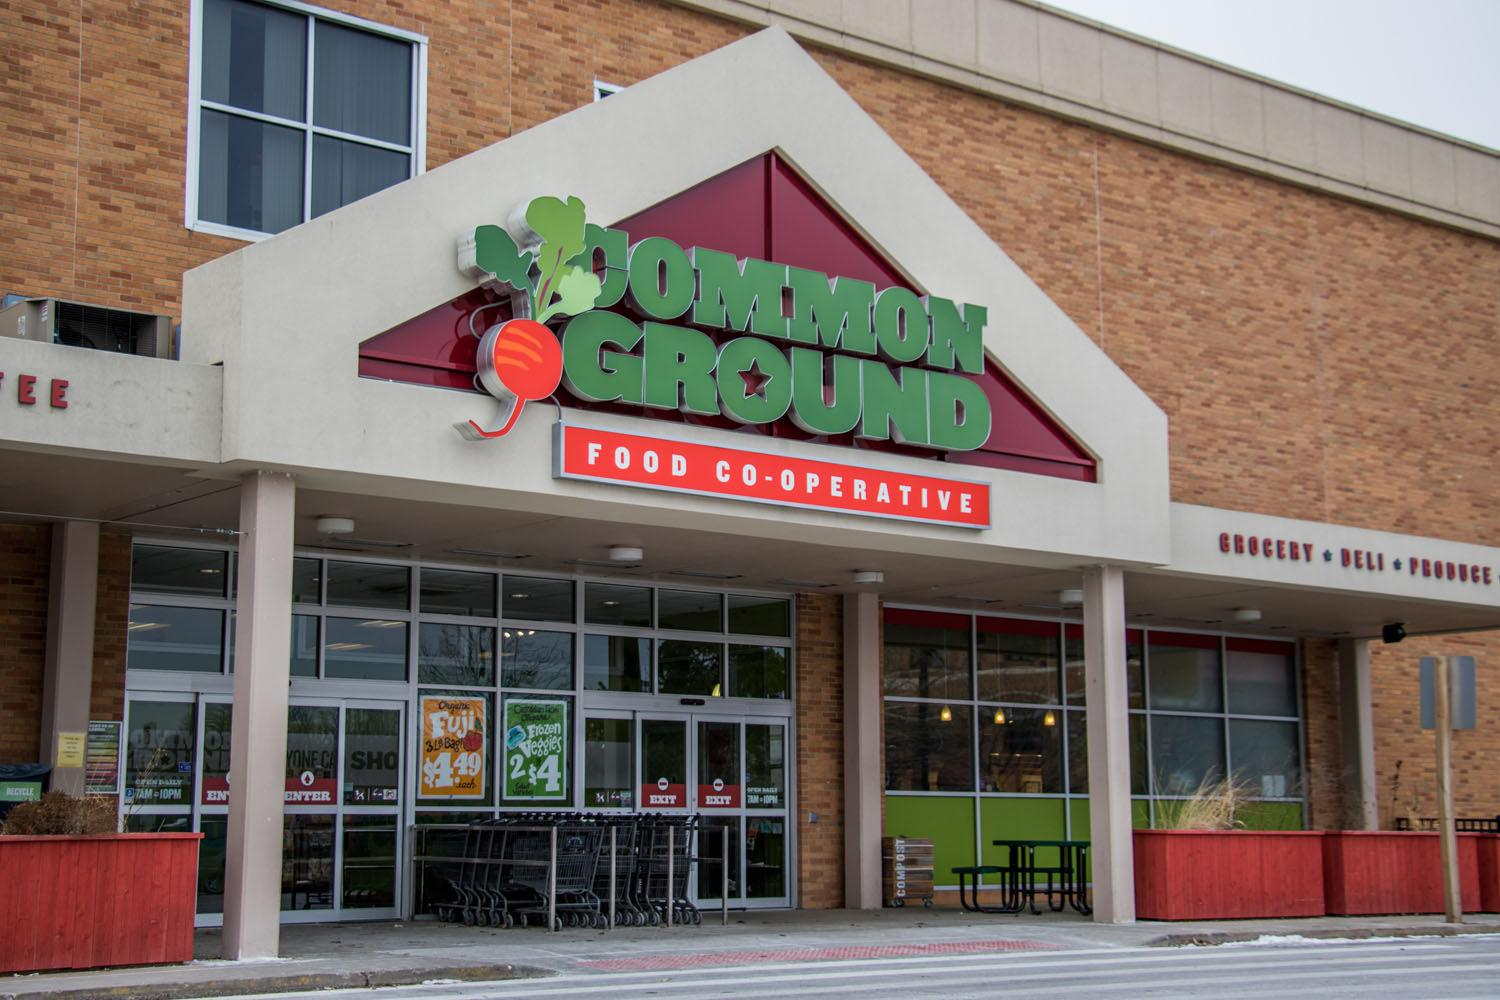 Common Ground Food Co-Op at Lincoln Square Mall in Urbana will have celebrating Urbana's First Fridays festival with food, beer and wine tastings. The event, which spans across downtown Urbana, is Friday, Aug. 4 from 4 to 11 p.m.